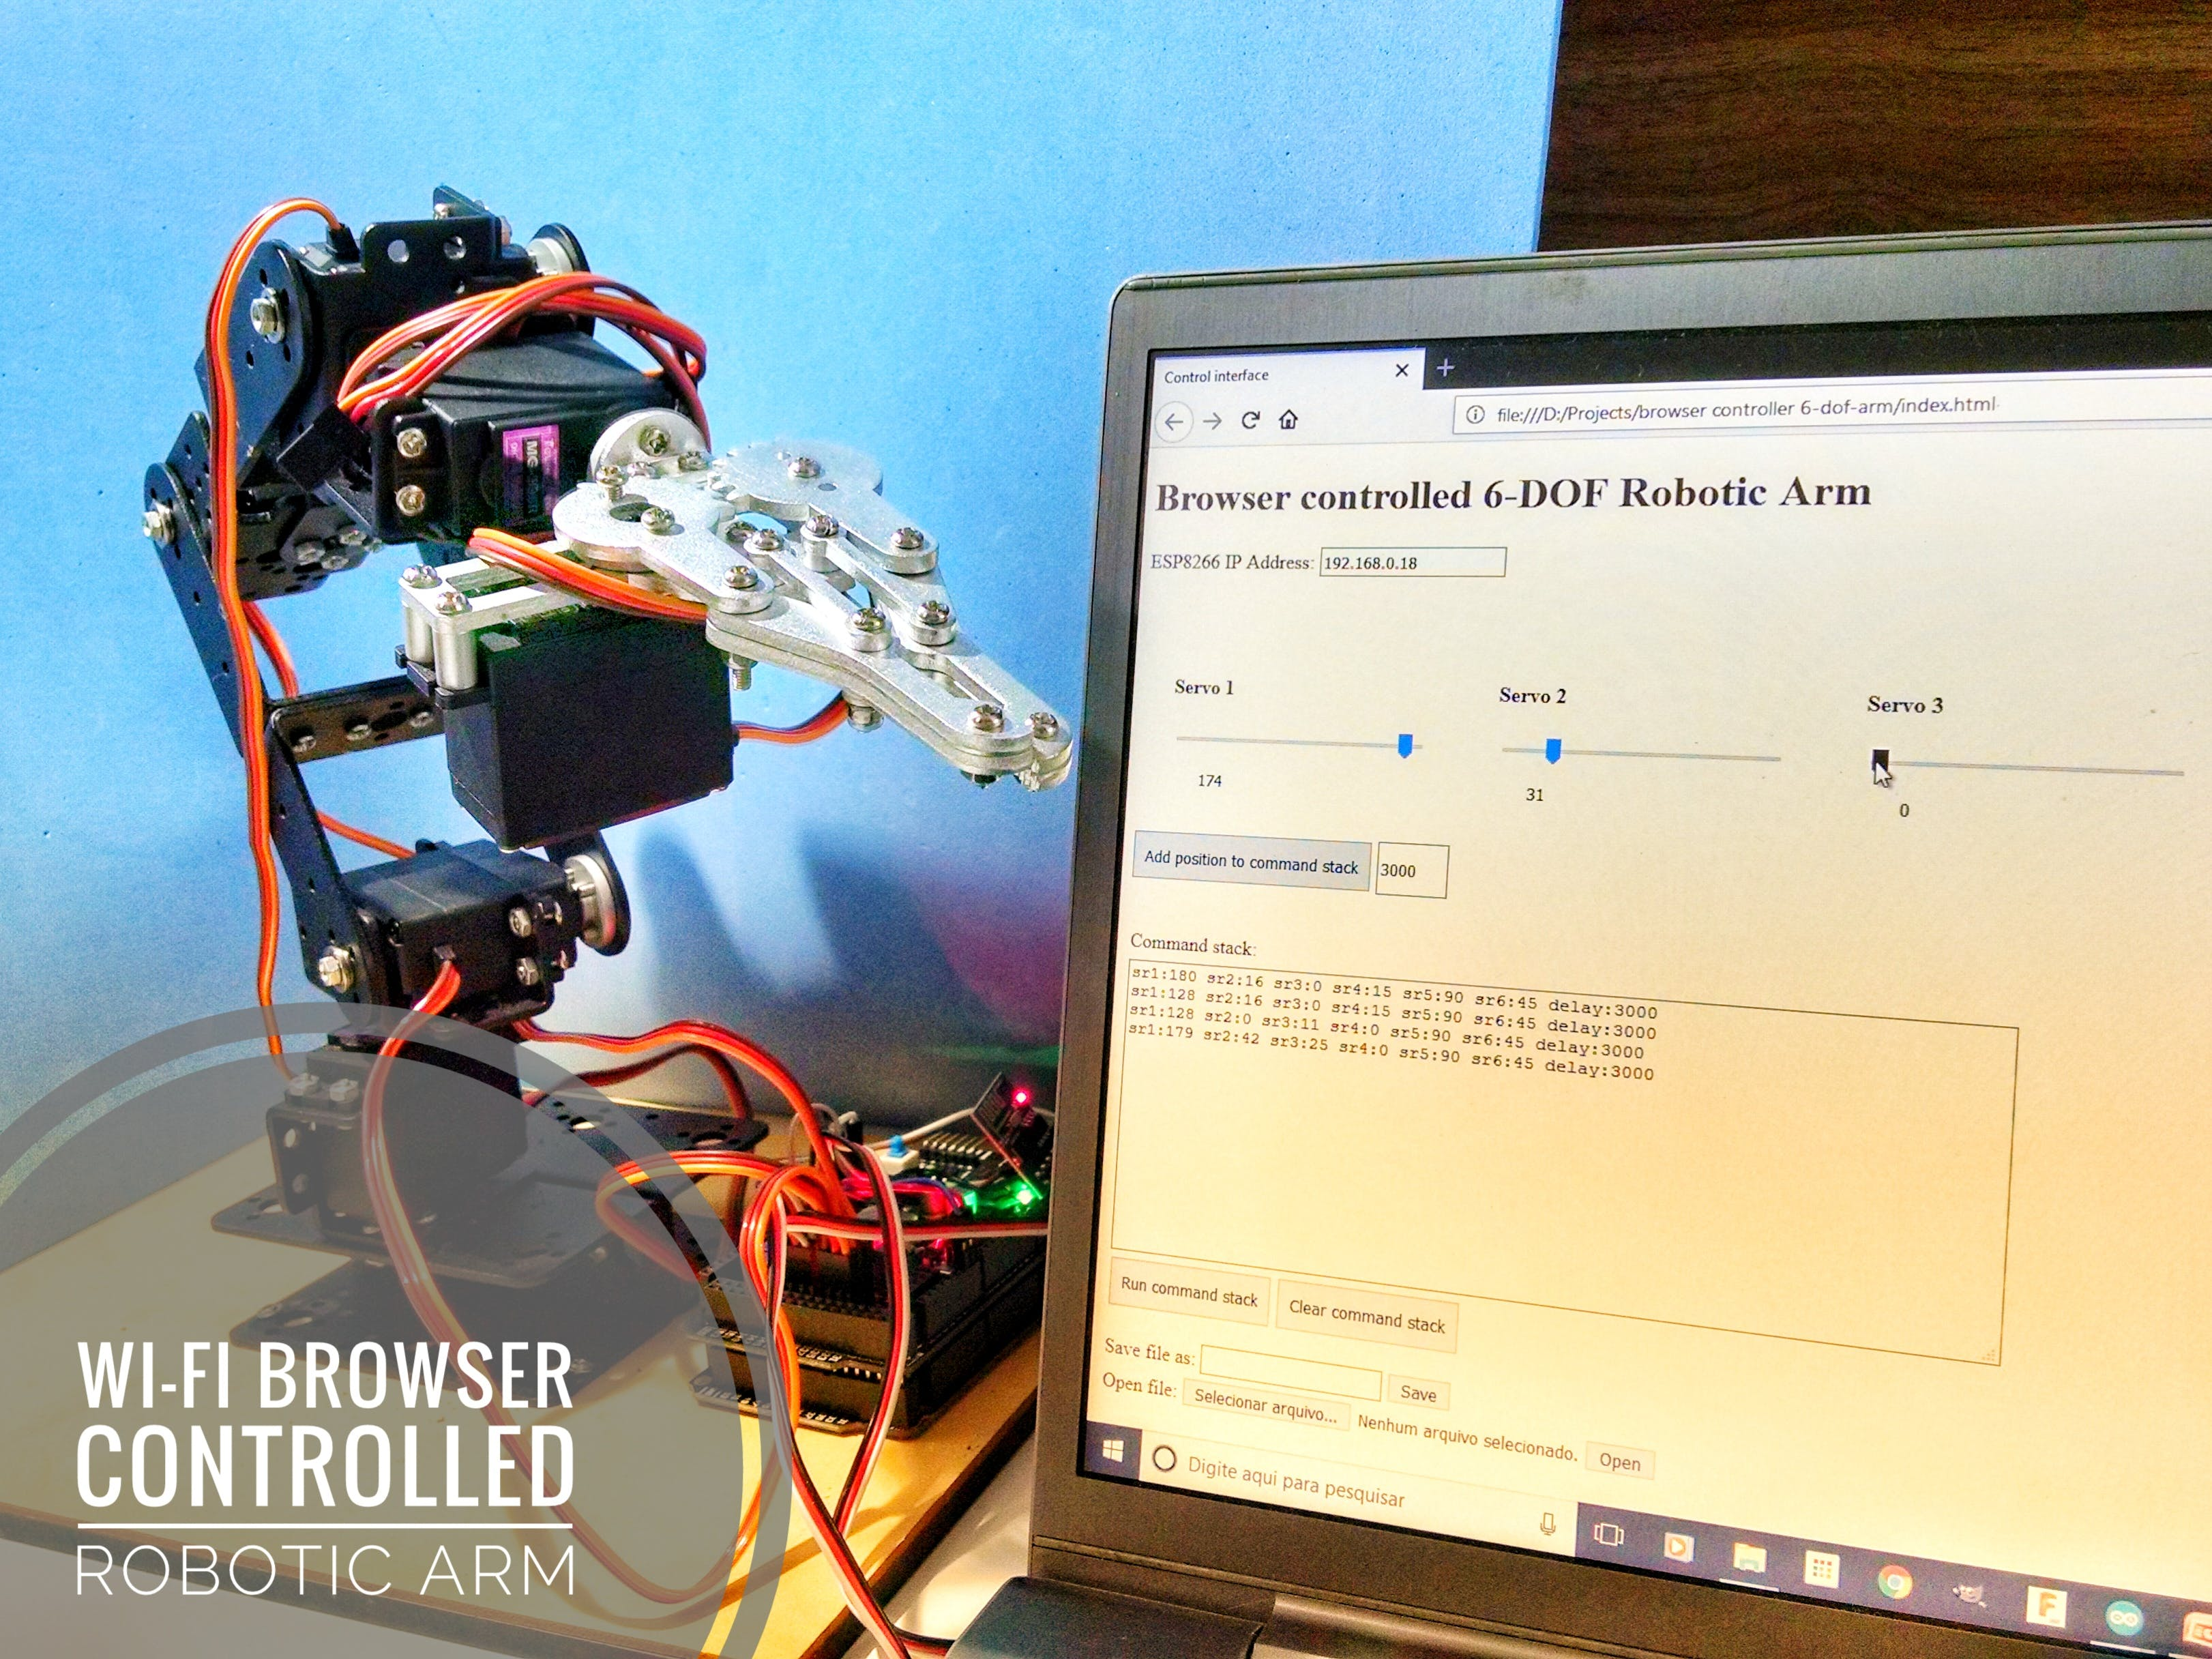 Wi-Fi Browser Controlled Robotic Arm